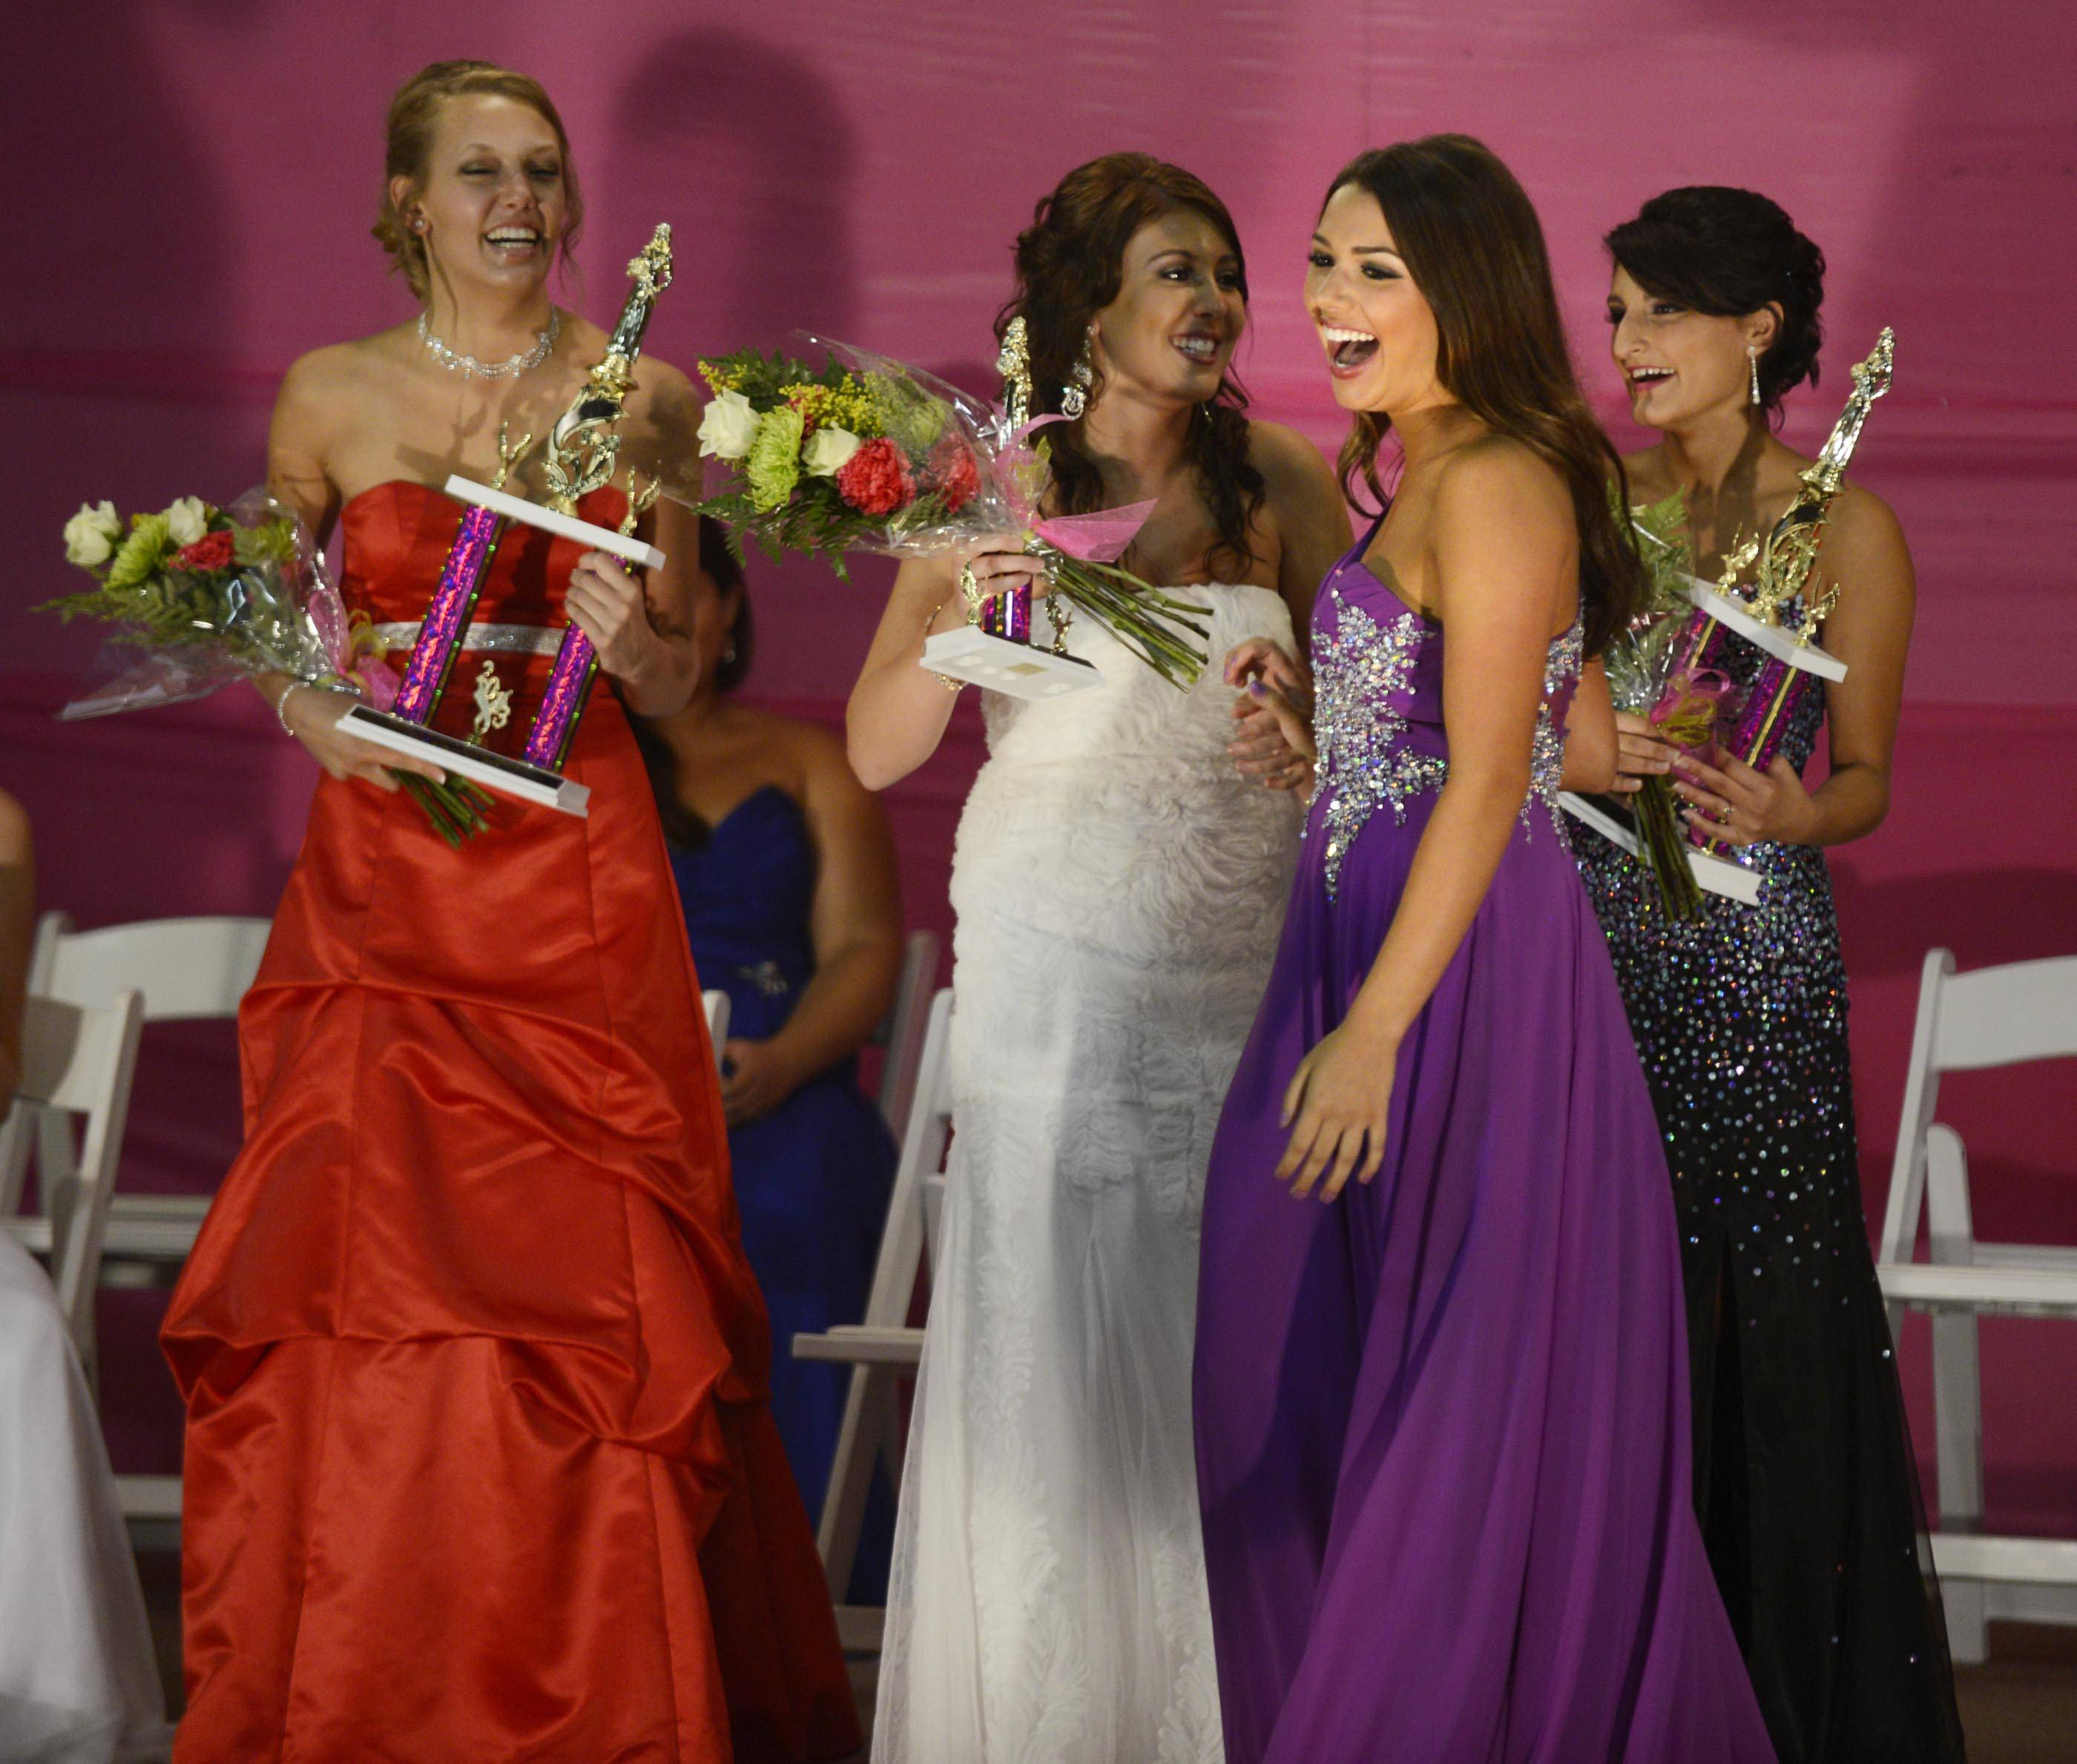 Savannah Kleiner, 18, of Lake in the Hills, won last year's McHenry County Queen Pageant. Behind her, from left, are first runner-up Jessica Thuma, 21, of Woodstock, third runner-up Brooke Romero, 16, of Lake in the Hills, and second runner-up Arlinda Fasliu, 18, of Woodstock. This year's pageant is Wednesday night.